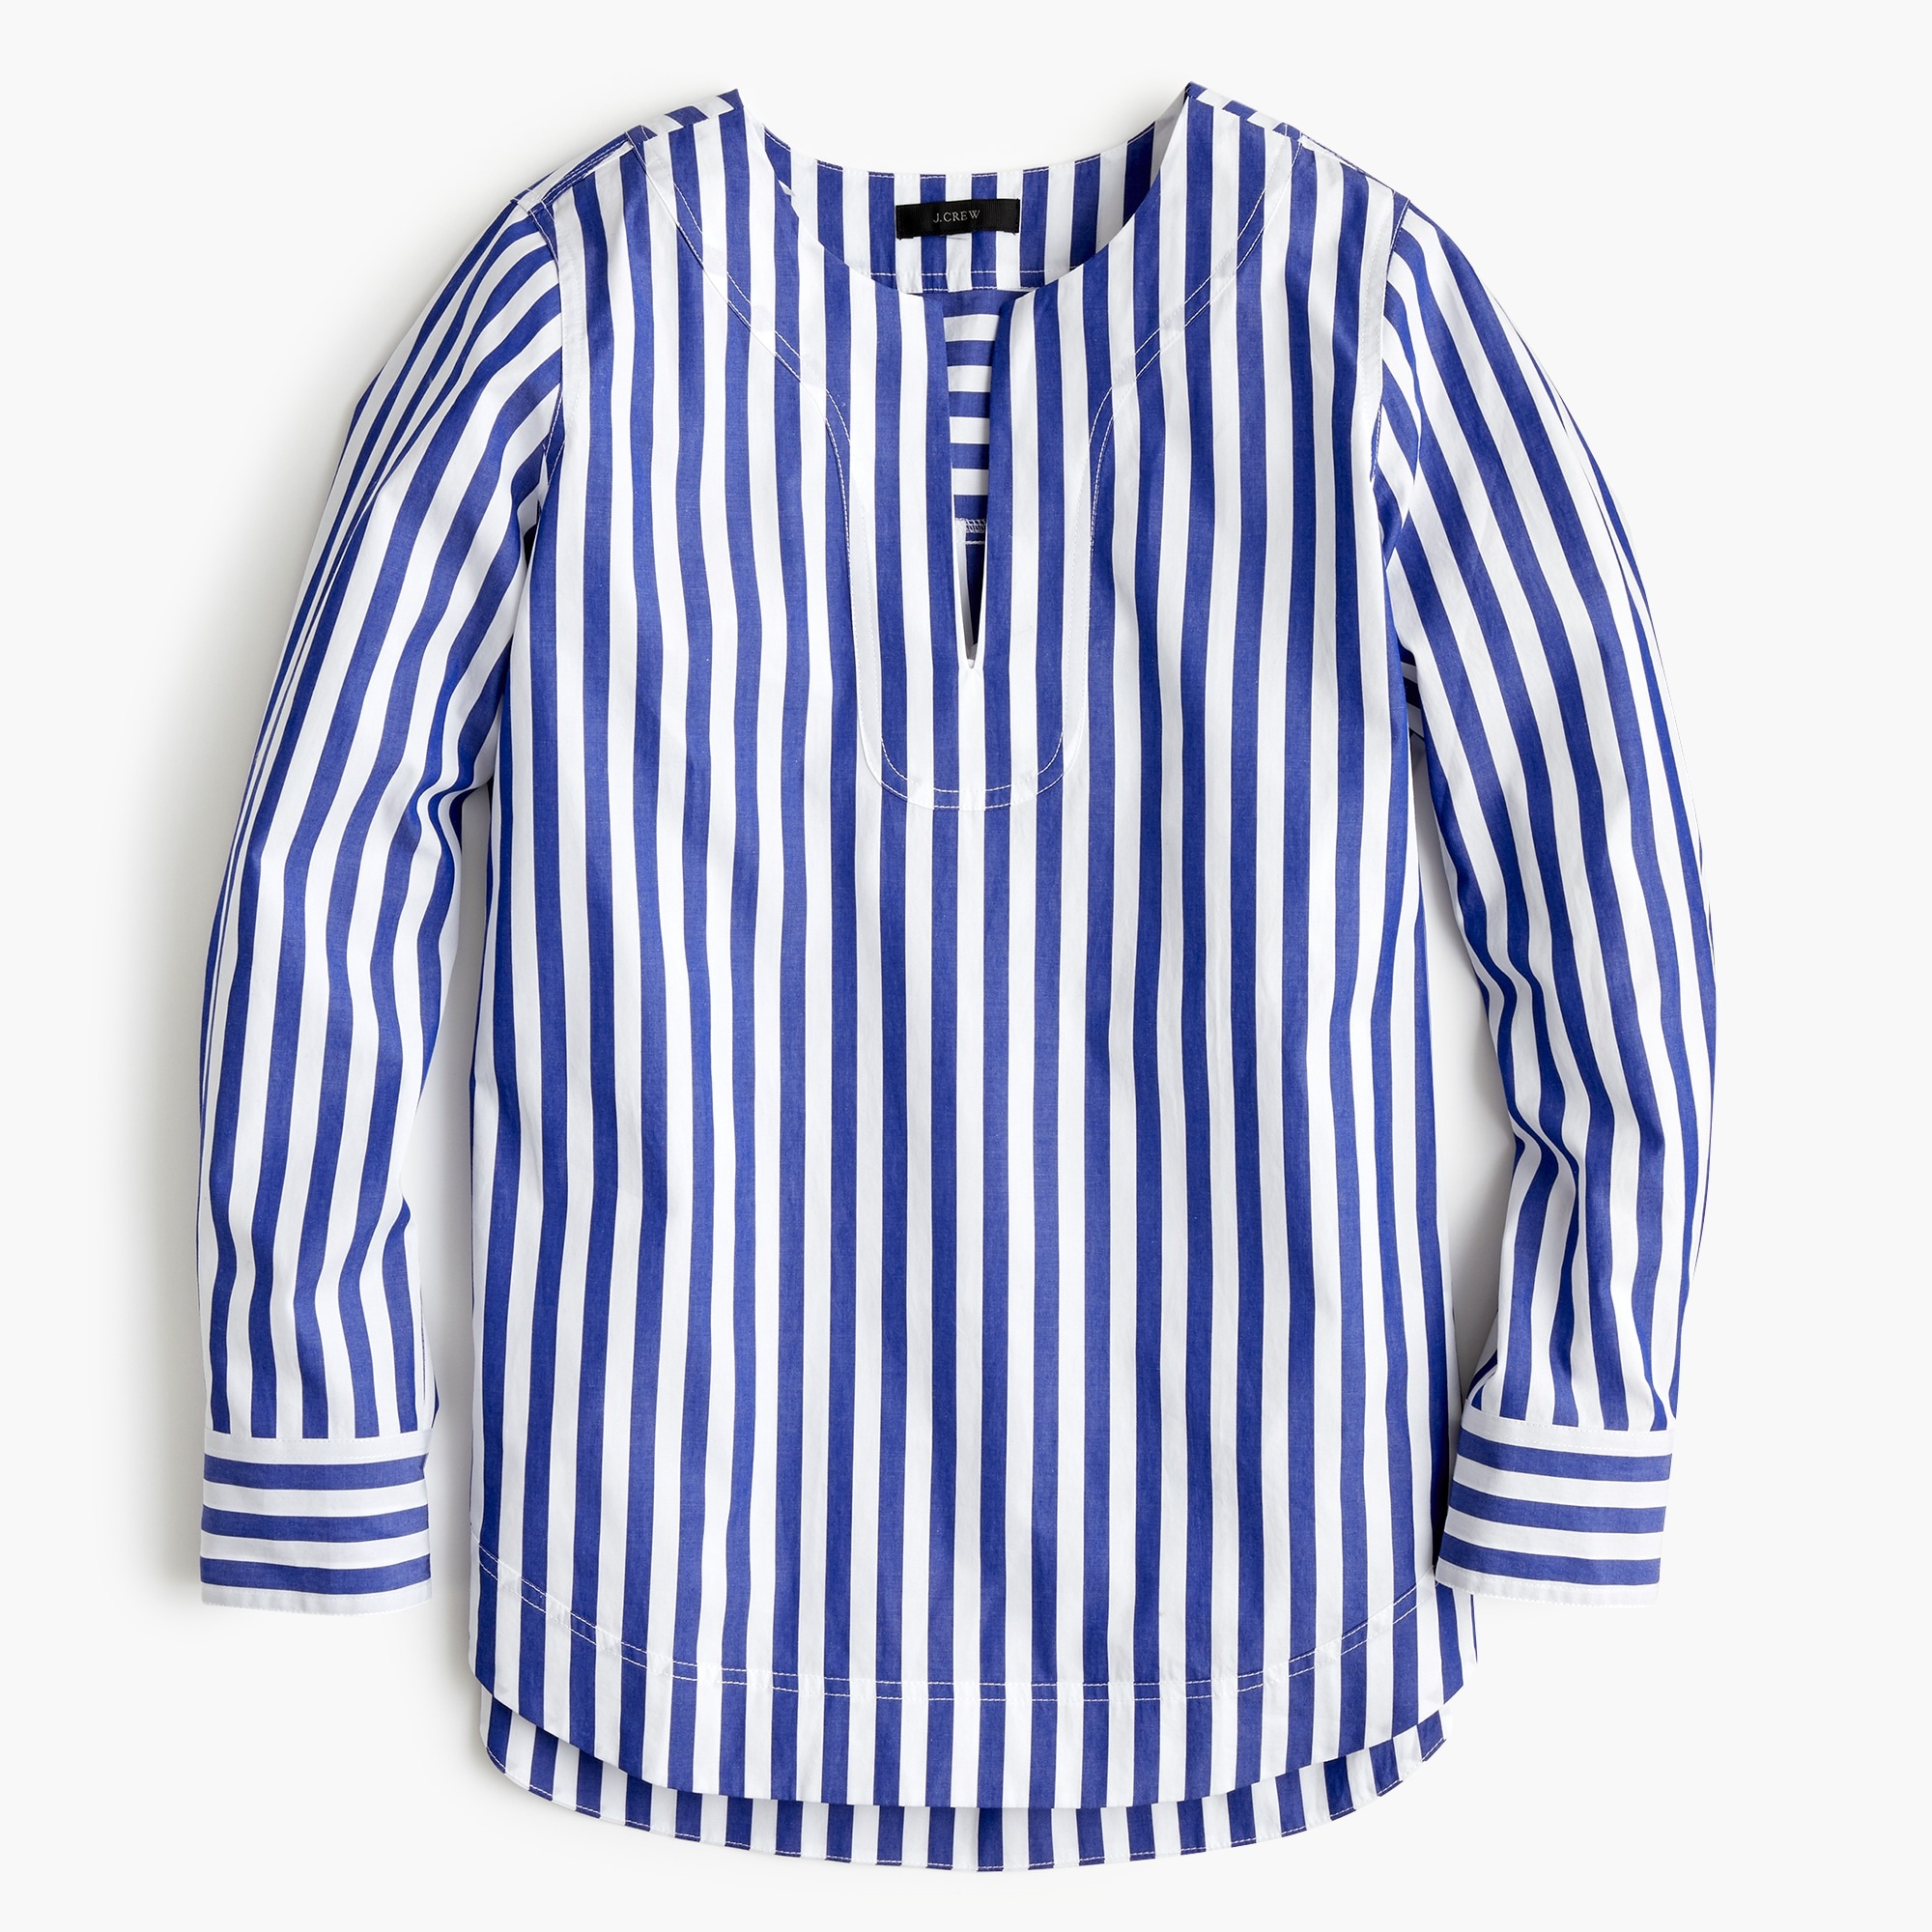 Image 1 for Tall tunic in bold stripe cotton poplin